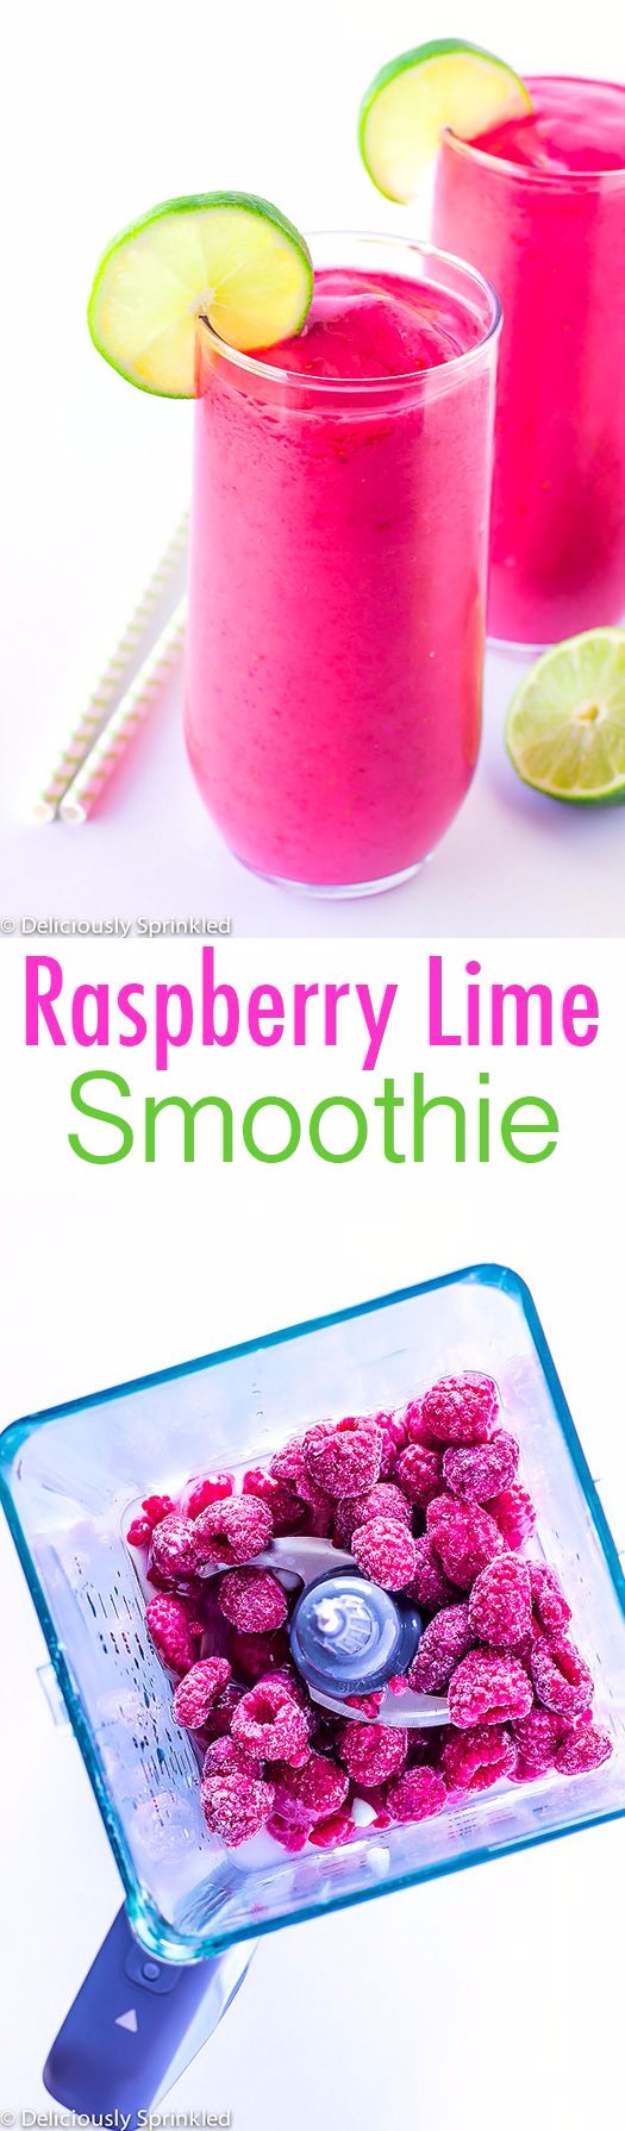 Healthy Smoothie Recipes - Raspberry Lime Smoothie - Easy ideas perfect for breakfast, energy. Low calorie and high protein recipes for weightloss and to lose weight. Simple homemade recipe ideas that kids love. Quick EASY morning recipes before work and school, after workout #smoothies #healthy #smoothie #healthyrecipes #recipes